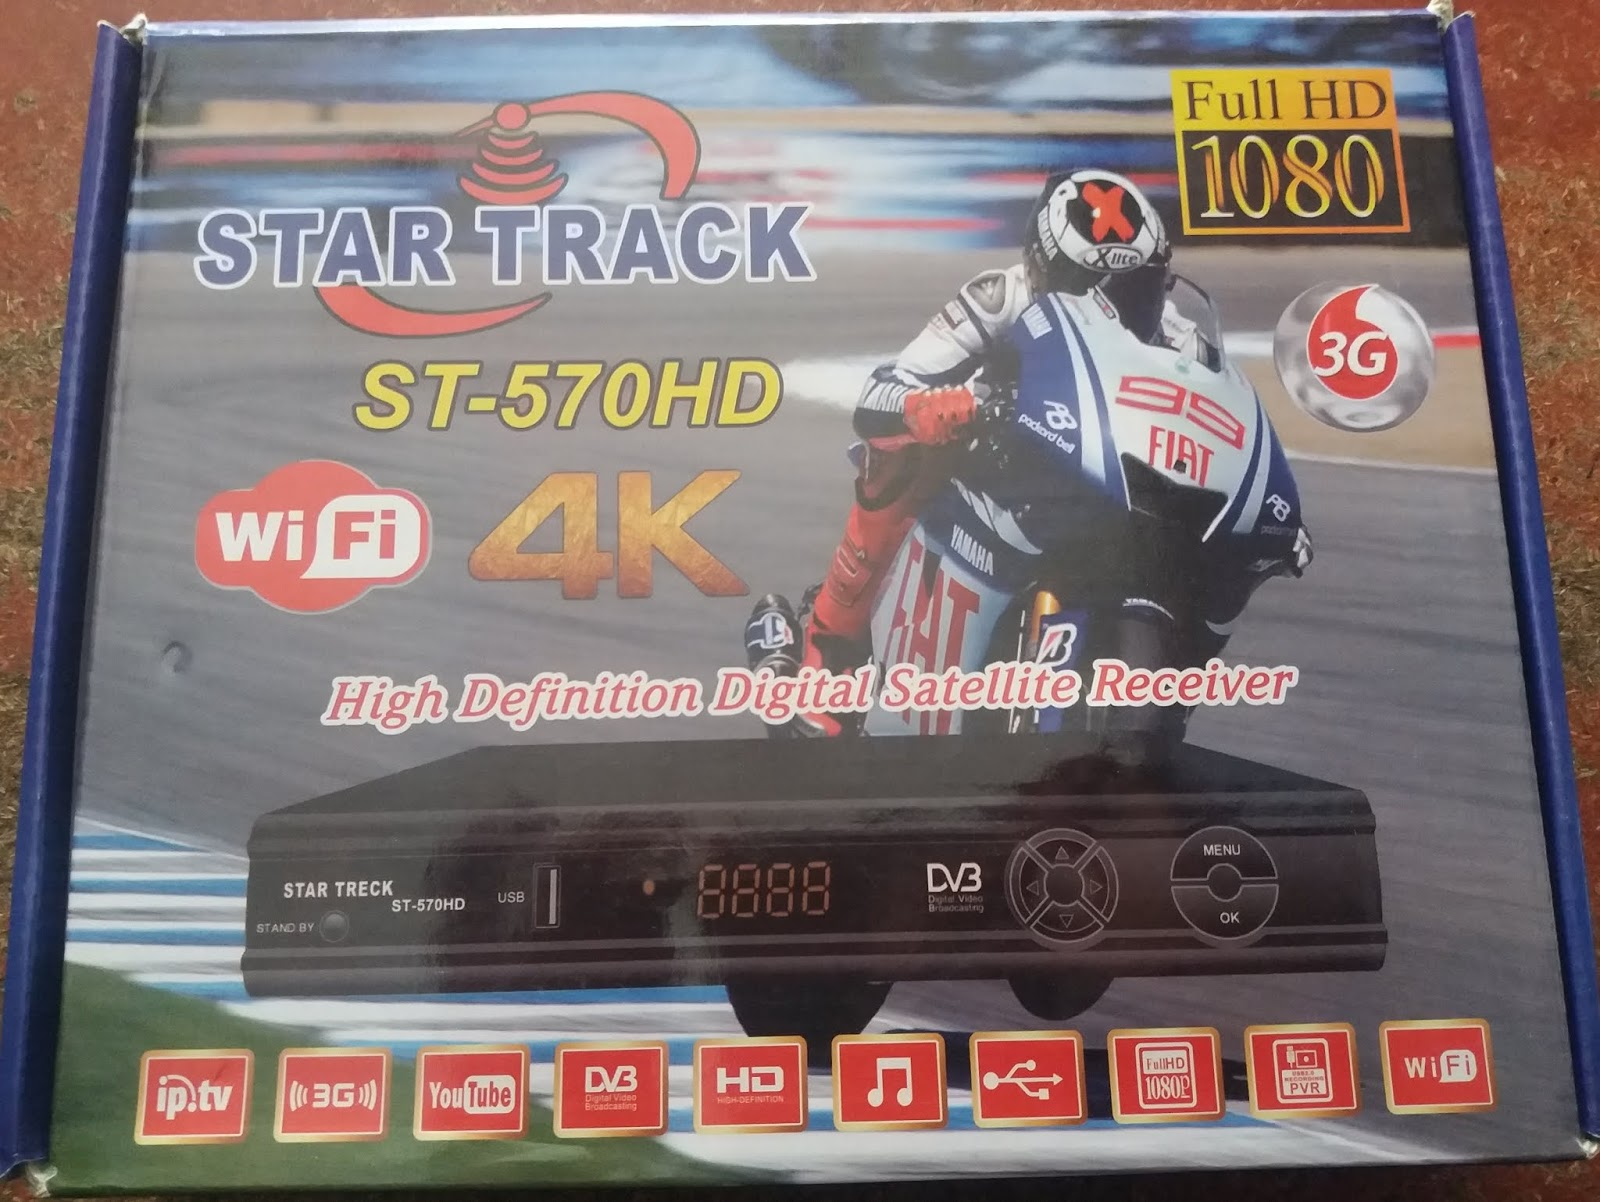 All Dish Receiver Software: STAR TRACK ST-570 HD RECEIVER